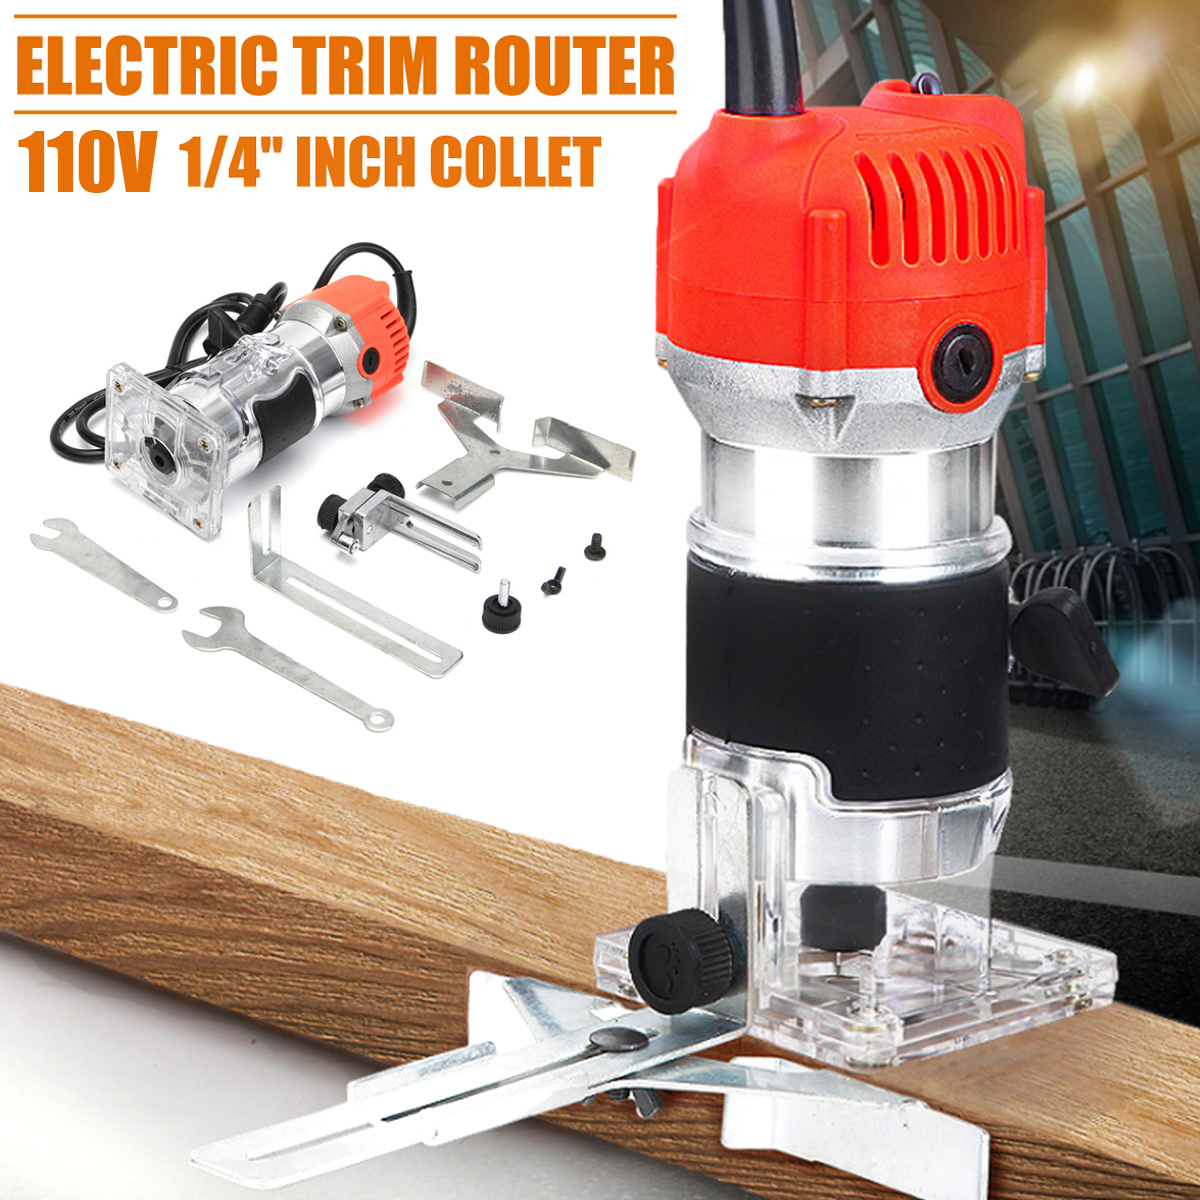 1//4'' Woodworking Trimmer Electric Edge Trimming Machine Wood edge Trimmer Tool